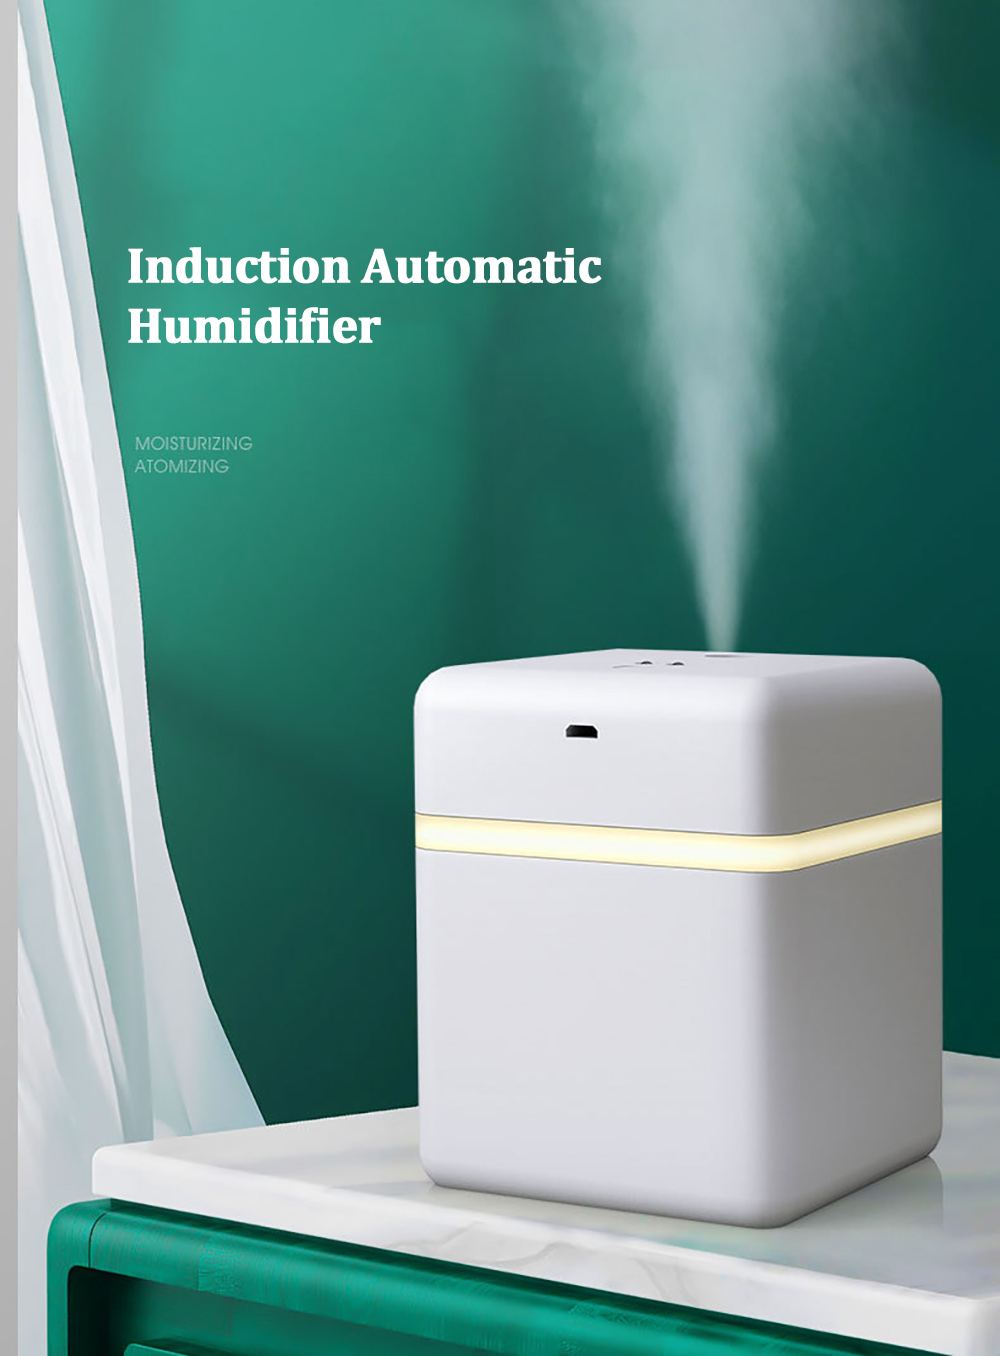 T3 Alcohol Sterilizer Induction Automatic Sprayer Hand Cleaner Atomizing Humidifier - White